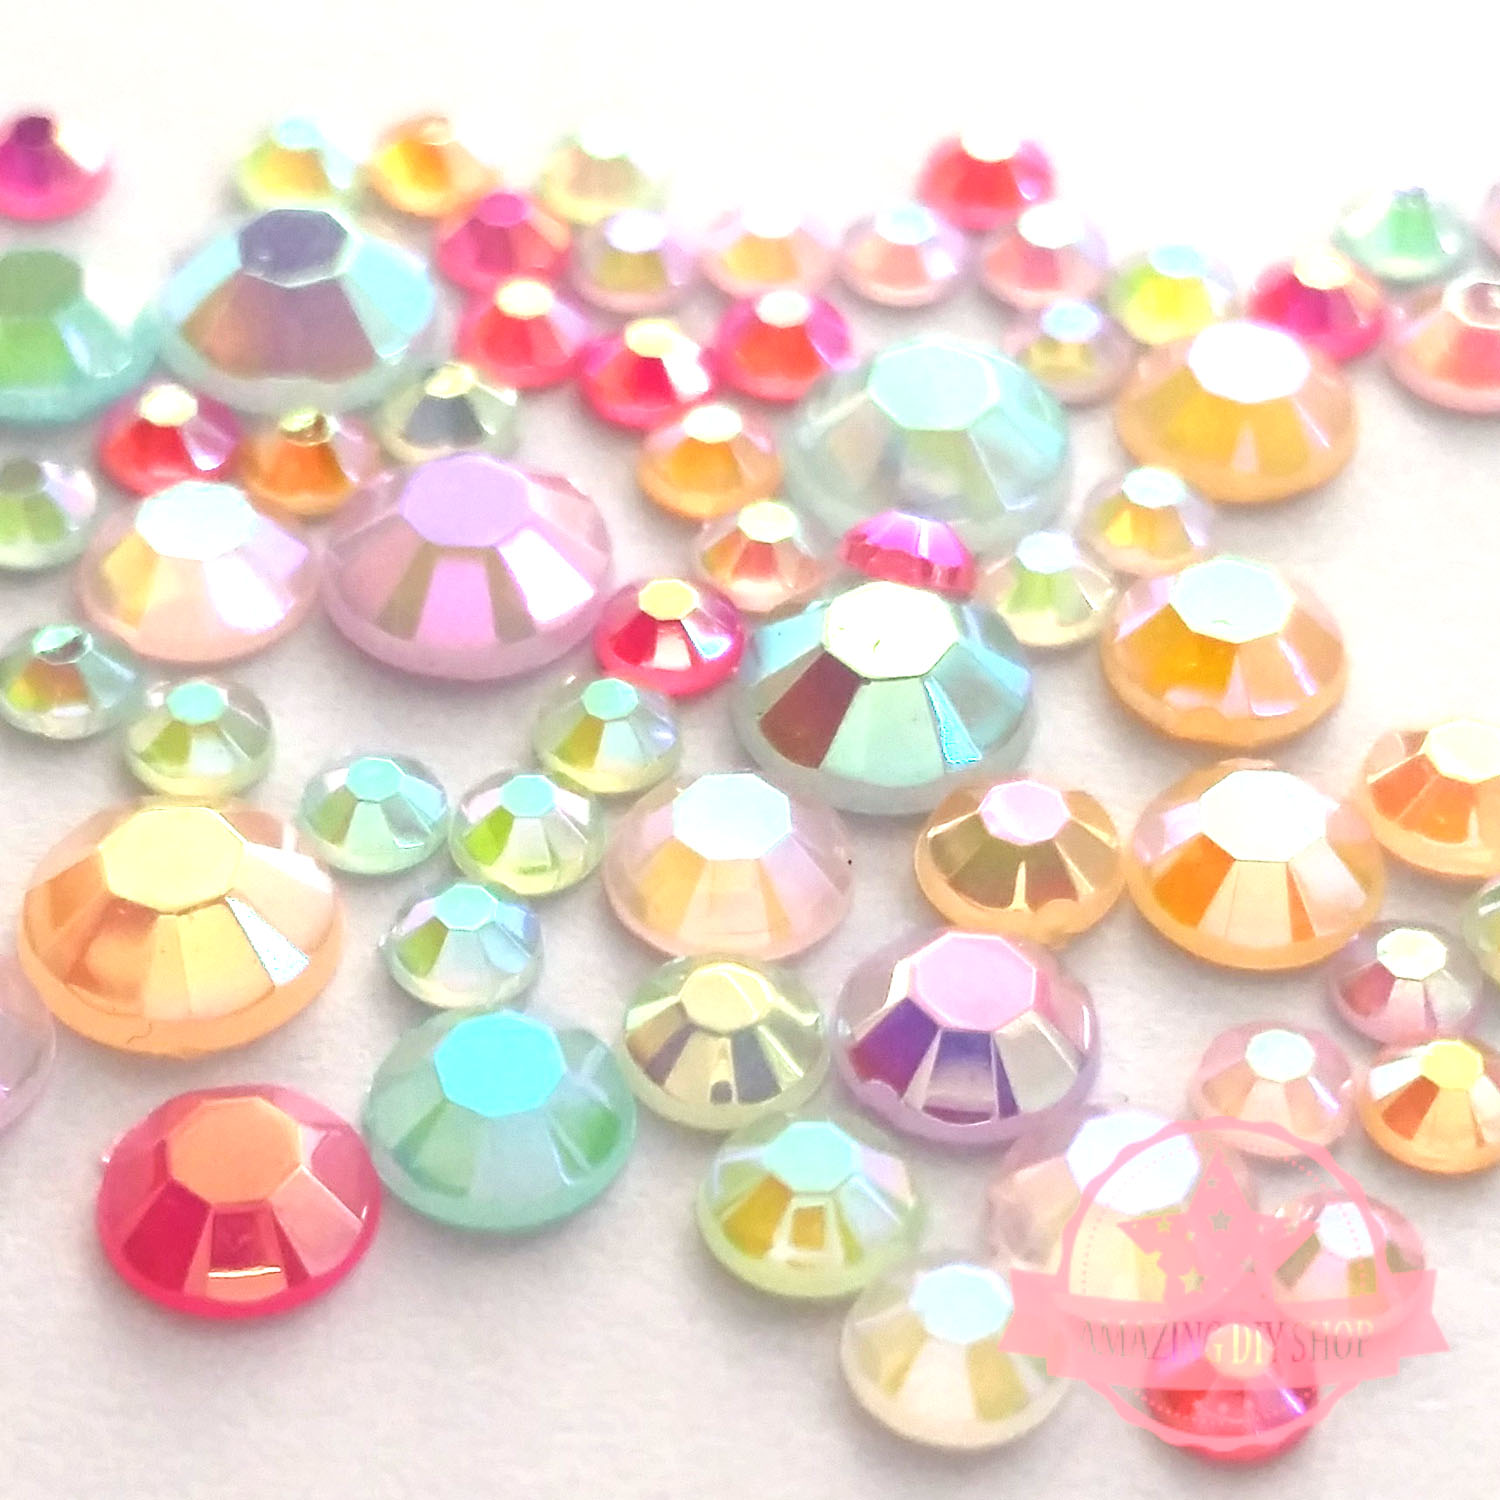 8fa1884d7590 Details about 1200 Jelly Resin Rhinestone 3 4 5 6mm Flat back Mixed Color  Size AB Decor